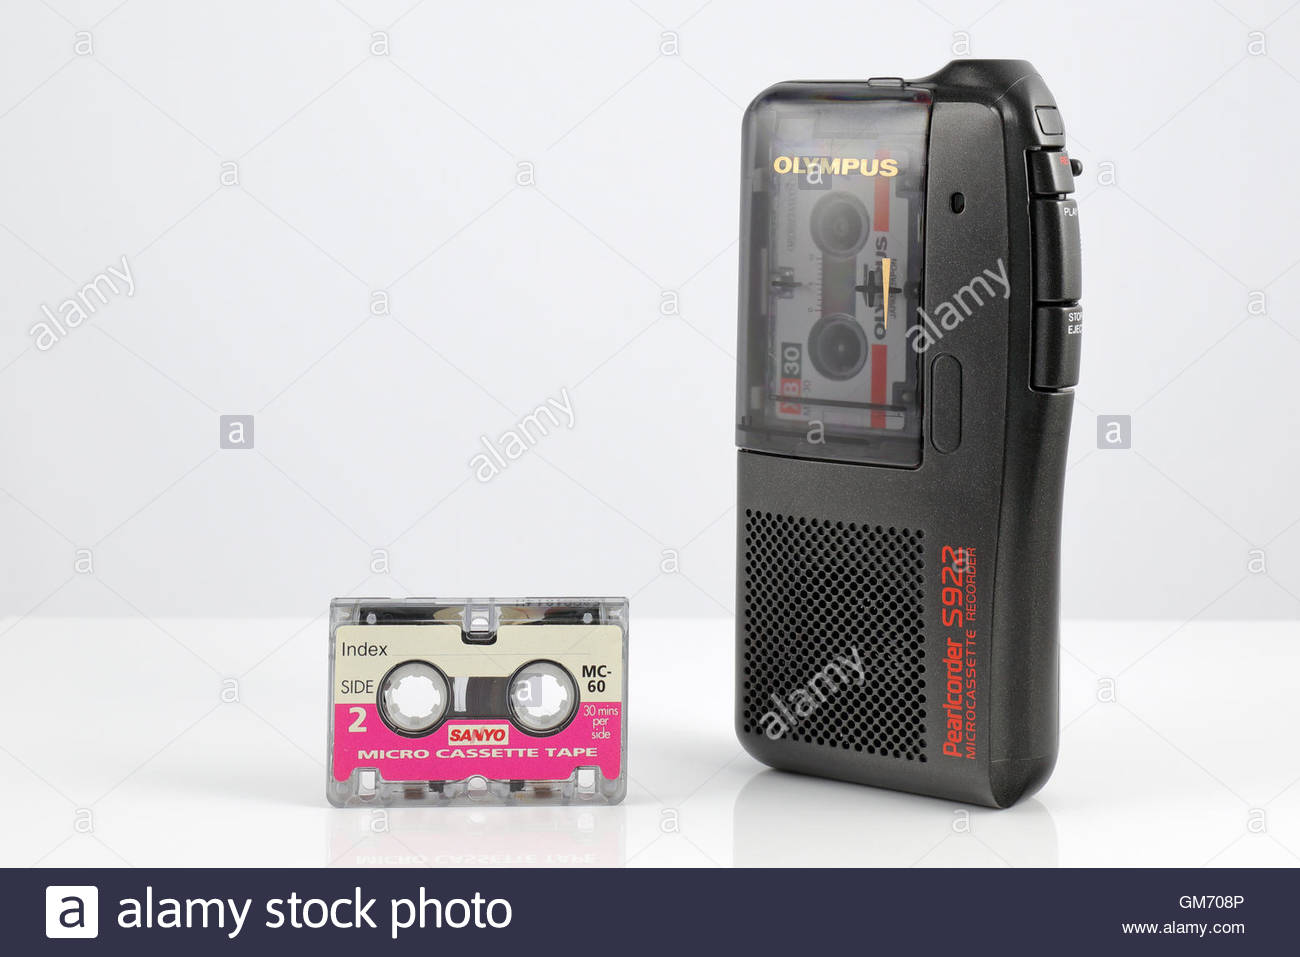 Olympus Pearlcorder S922 Microcassette Recorder and Sanyo Microcassette, placed on a white reflective surface - Stock Image